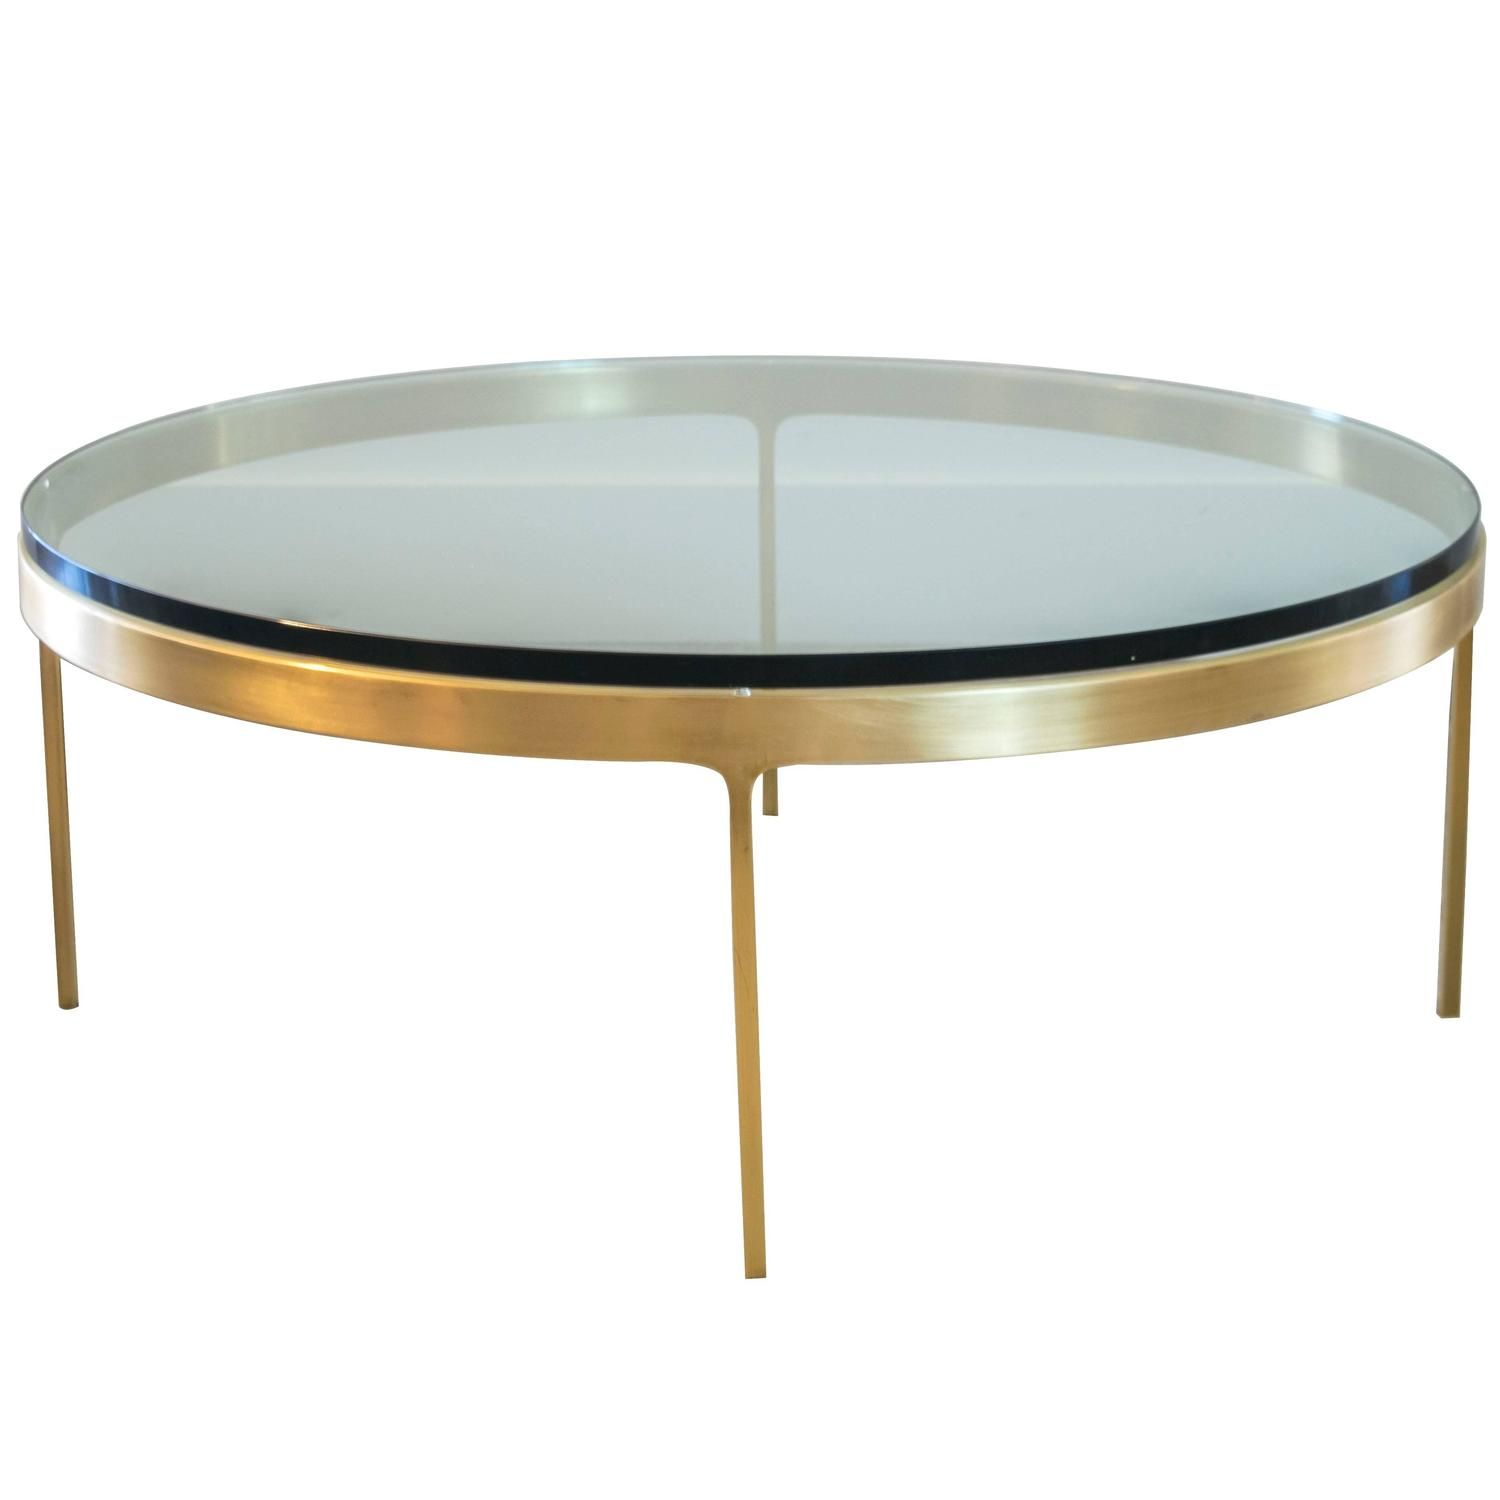 Solid Brass Round Coffee Table by Nicos Zographos